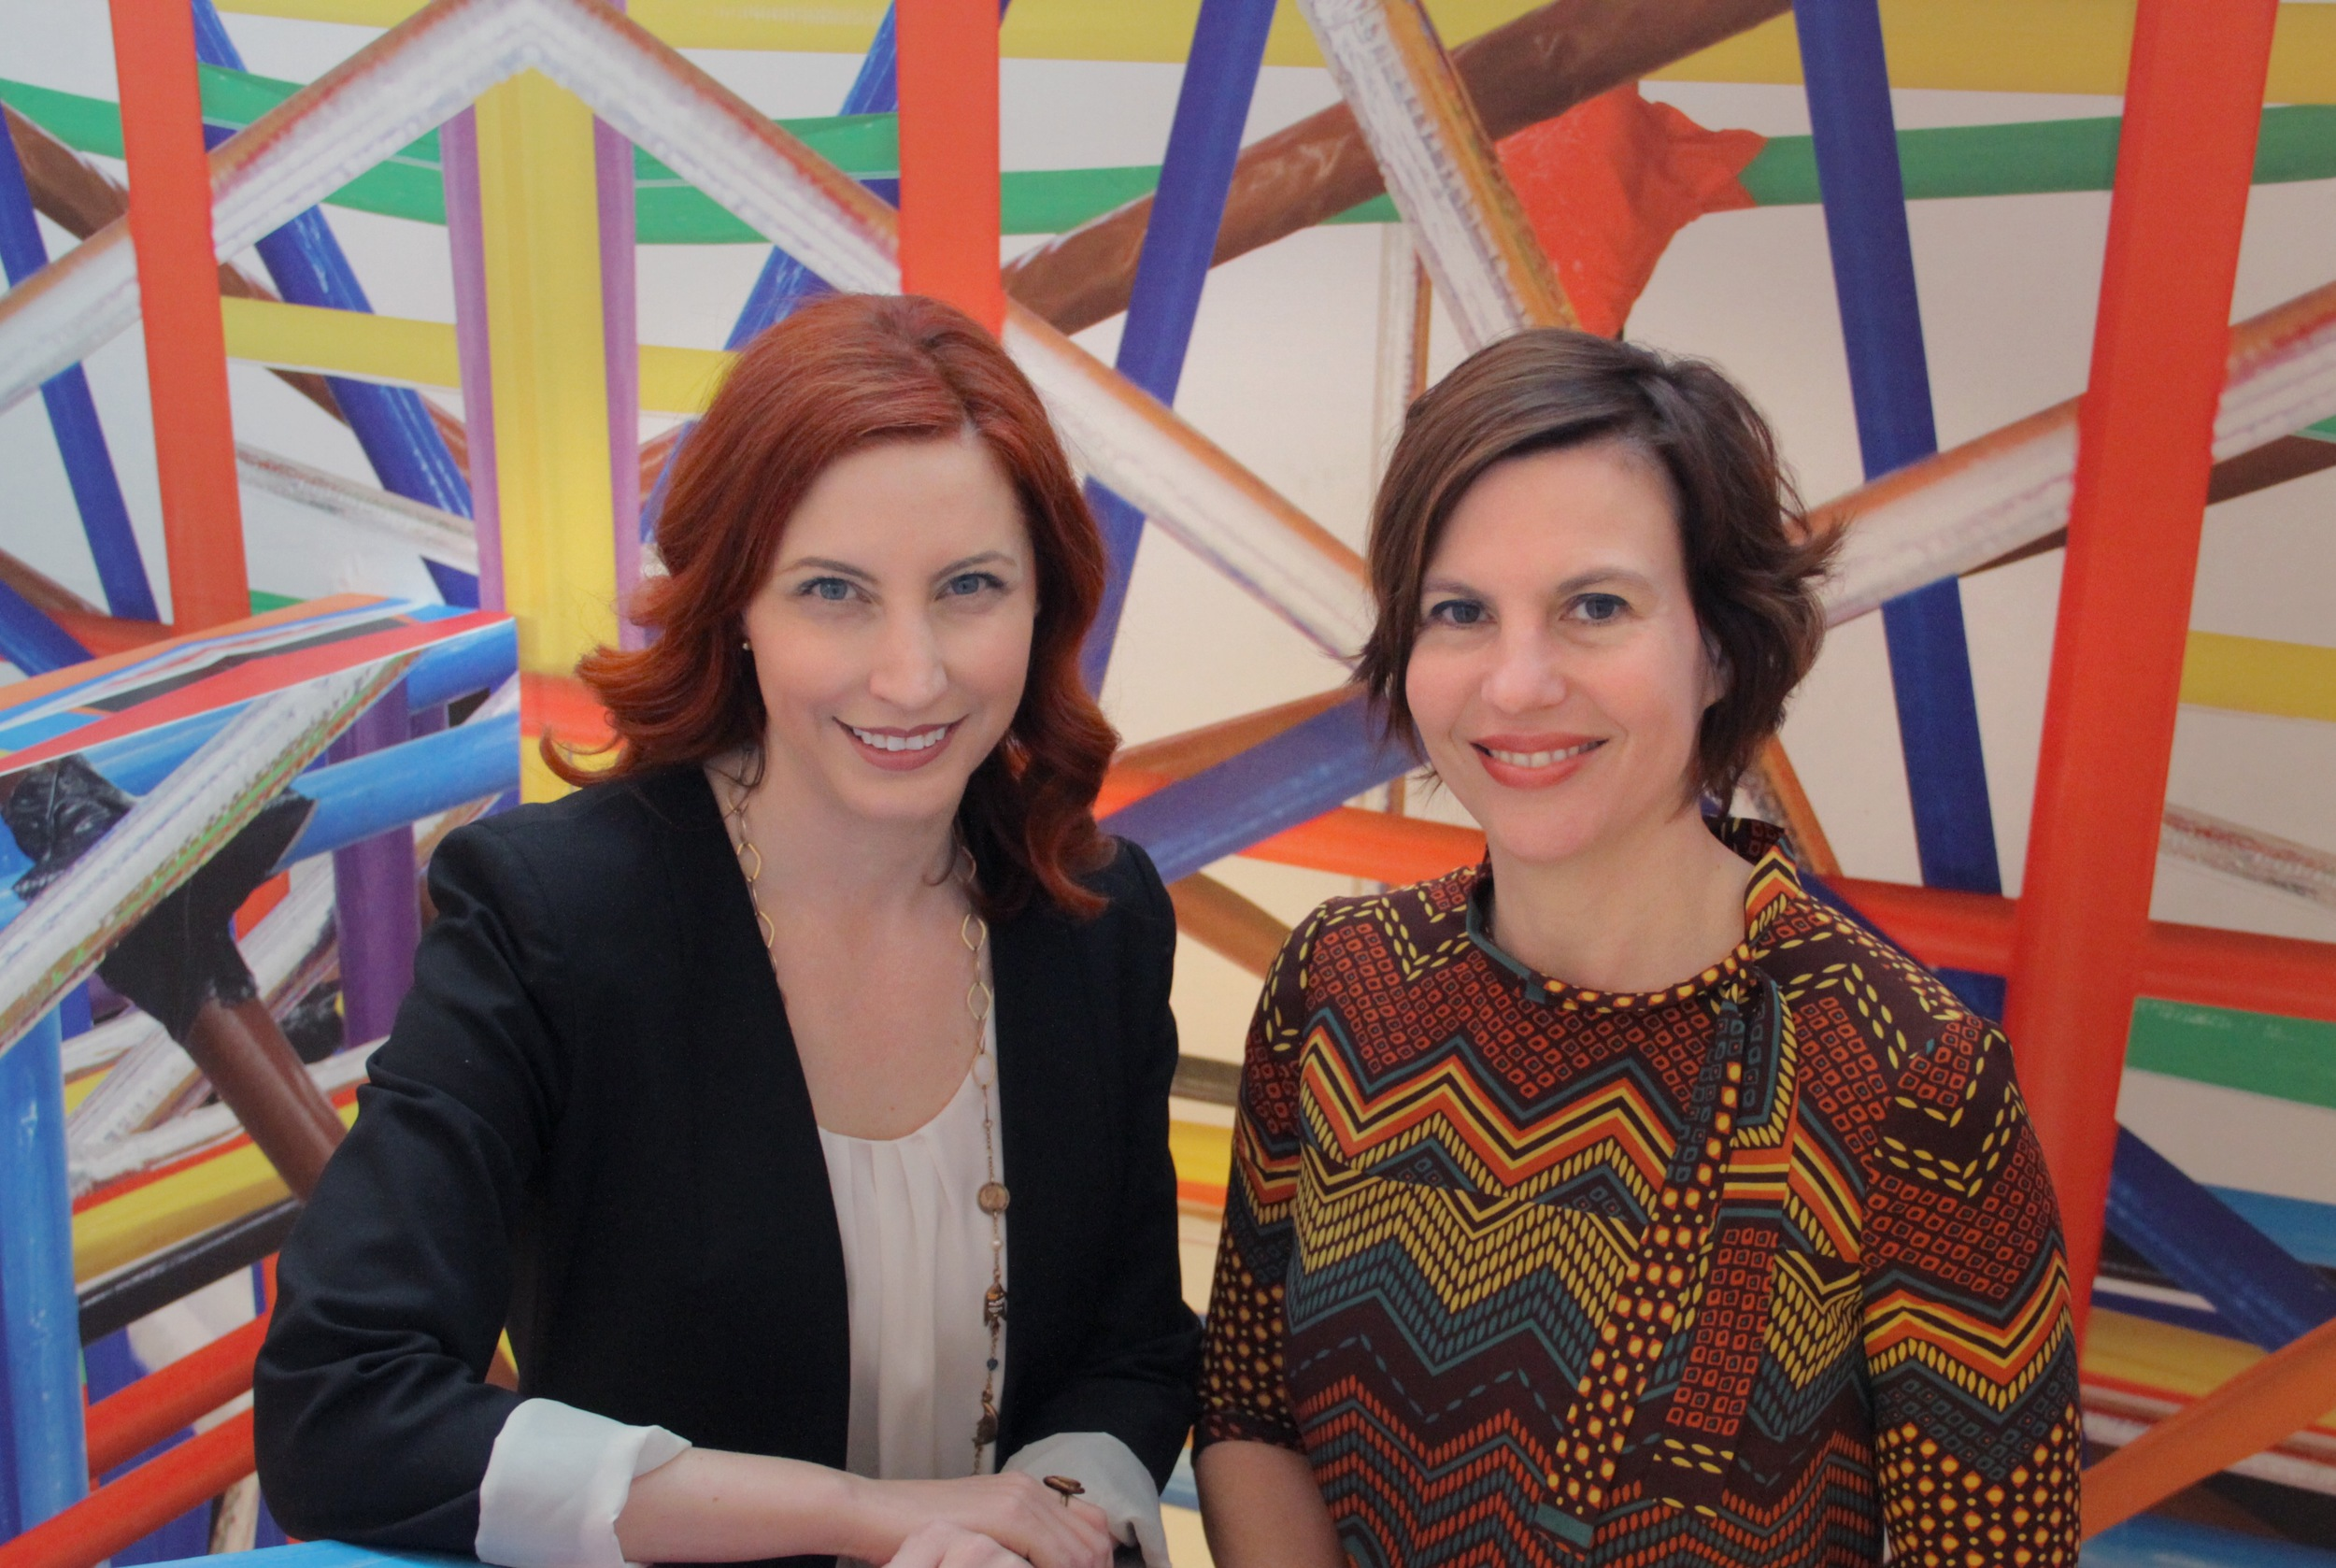 Johnson Foundation CEO, Amy Goodwin, with Contemporary Arts Center Director Raphaela Platow. Photo Courtesy of Contemporary Arts Center.